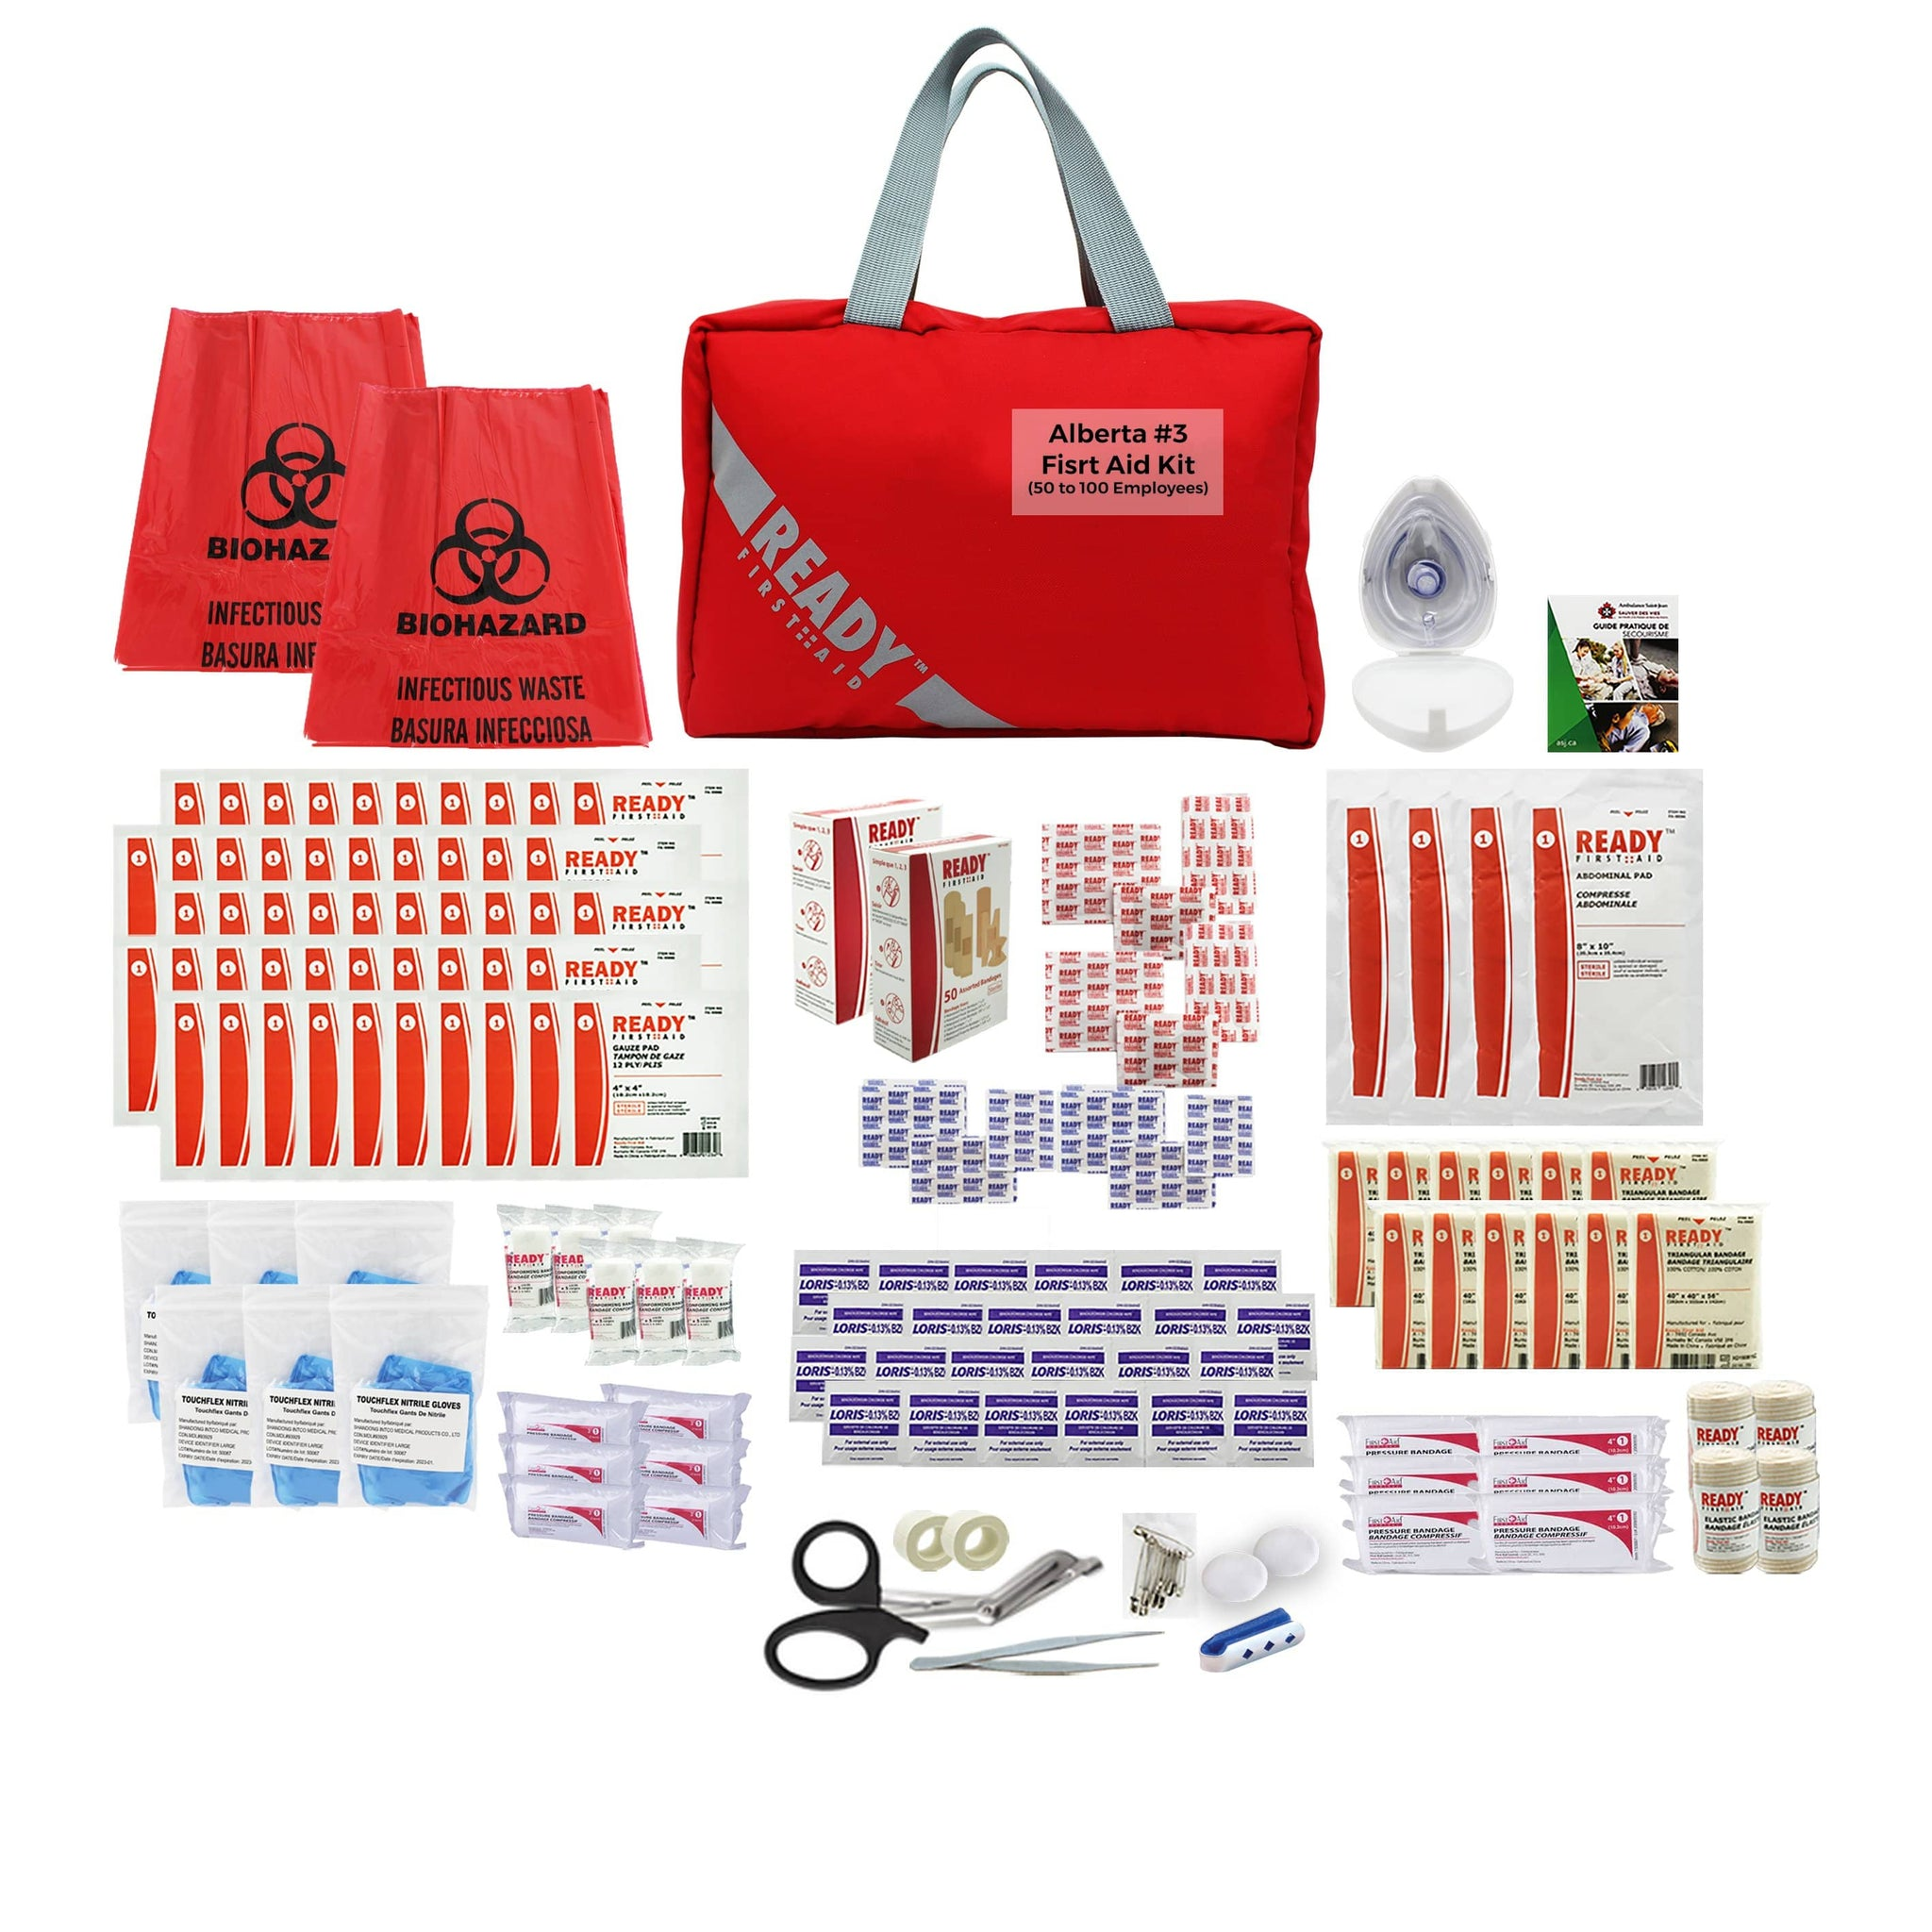 Alberta Level 3 First Aid Kit (50 to 100 employees) - Ready First Aid™